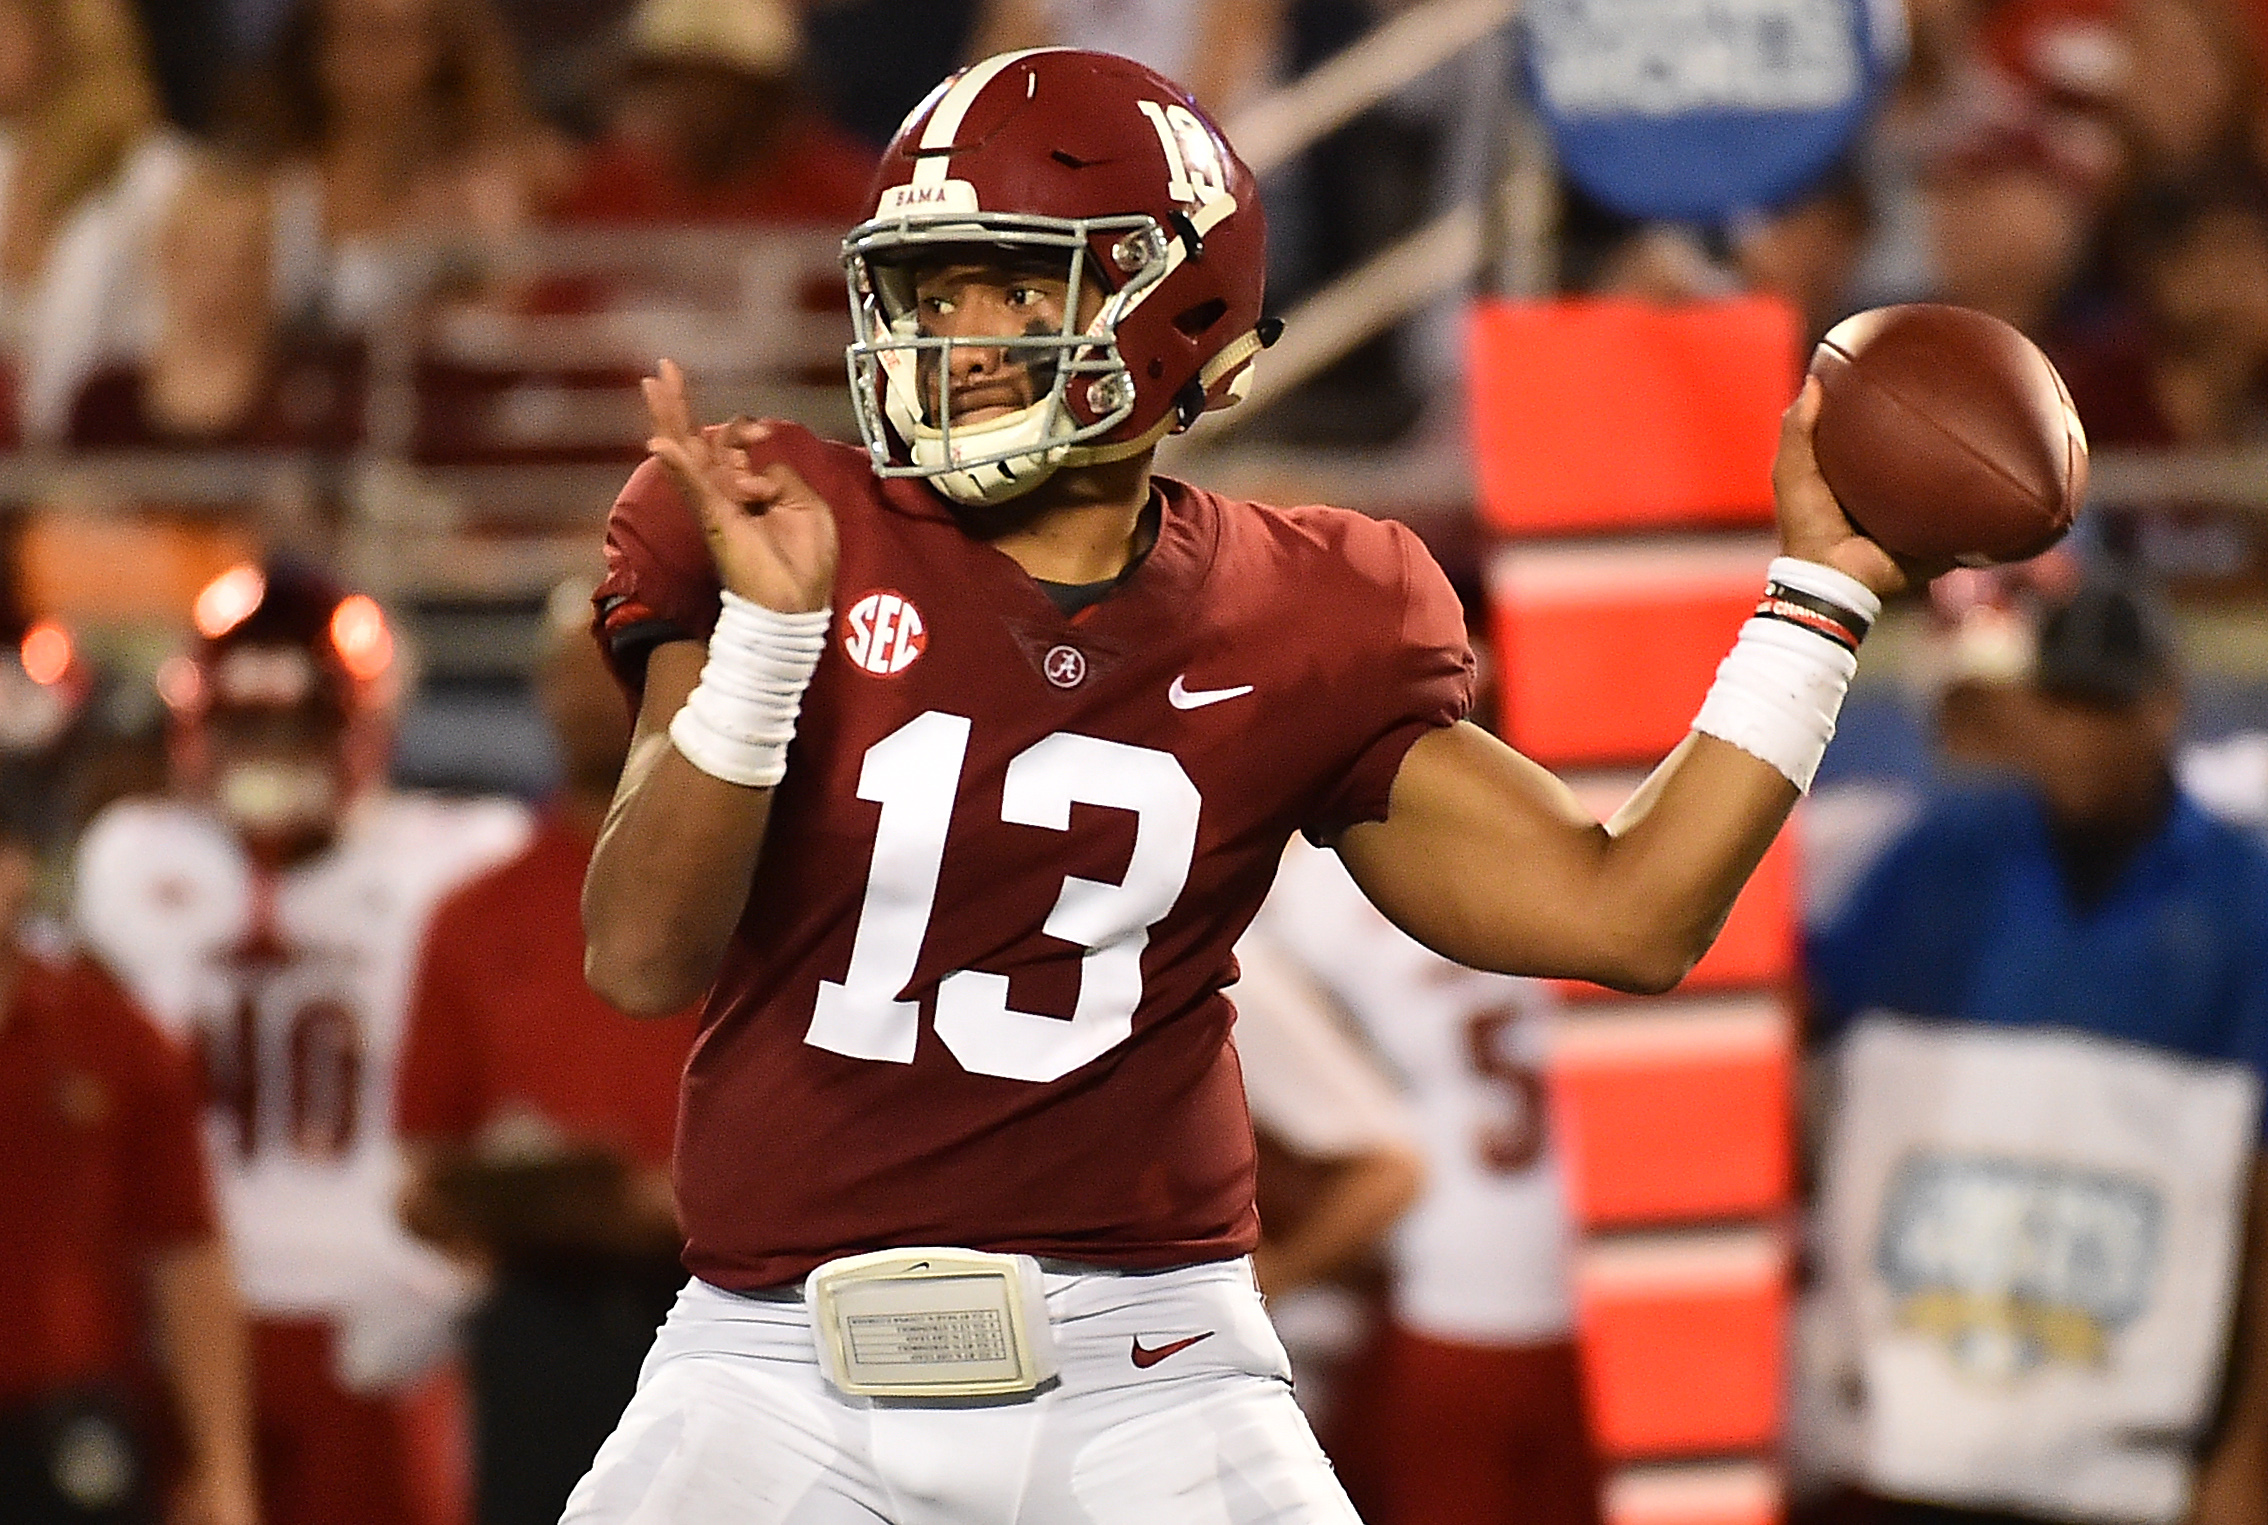 Sep 1, 2018; Orlando, FL, USA; Alabama Crimson Tide quarterback Tua Tagovailoa (13) attempts a pass against the Louisville Cardinals during the first half at Camping World Stadium. Mandatory Credit: Jasen Vinlove-USA TODAY Sports